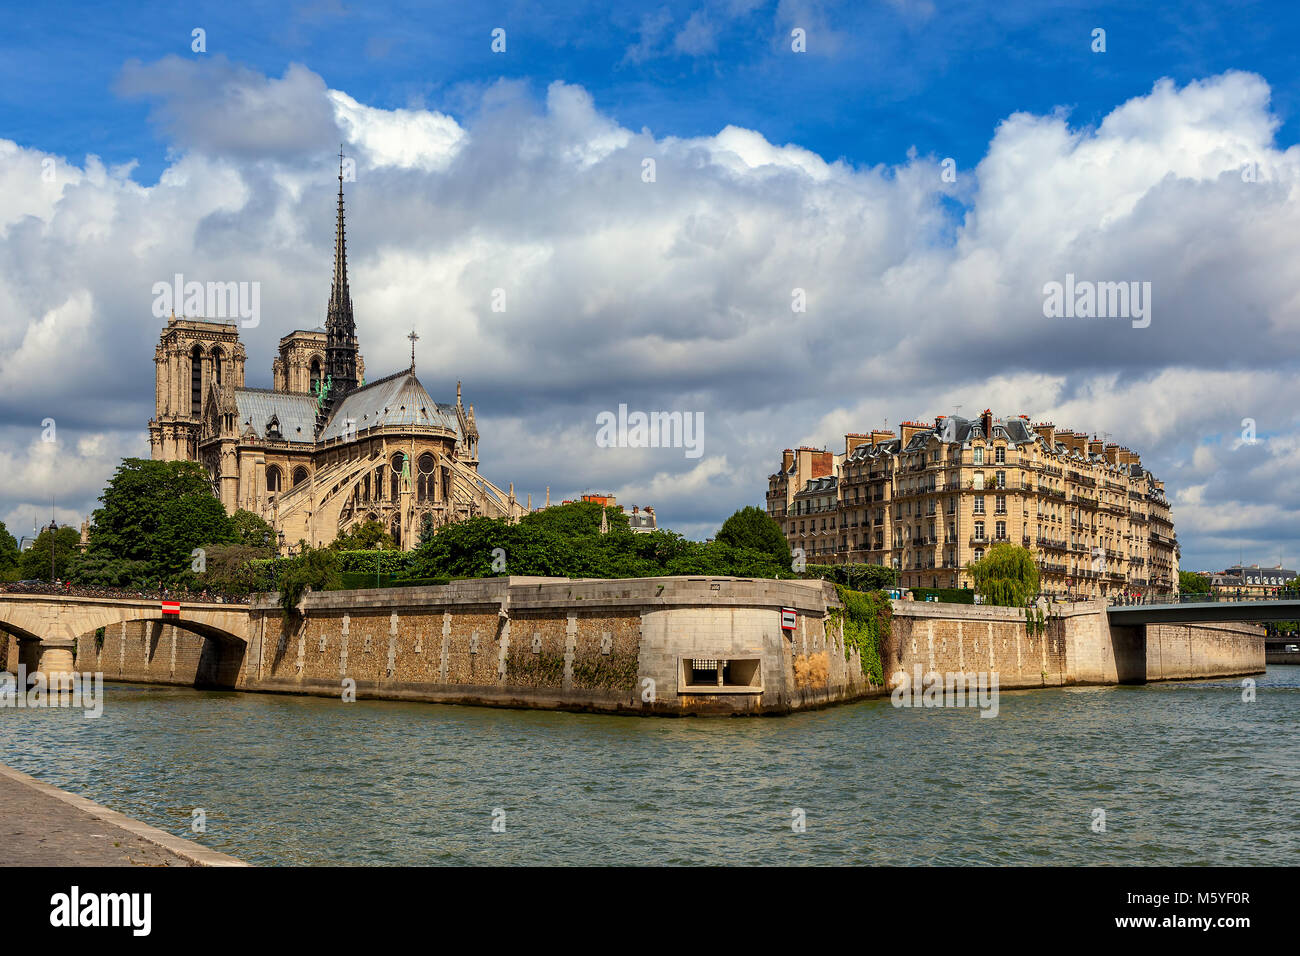 View of Seine river and famous Notre-Dame de Paris Cathedral under beautiful sky in Paris, France. - Stock Image